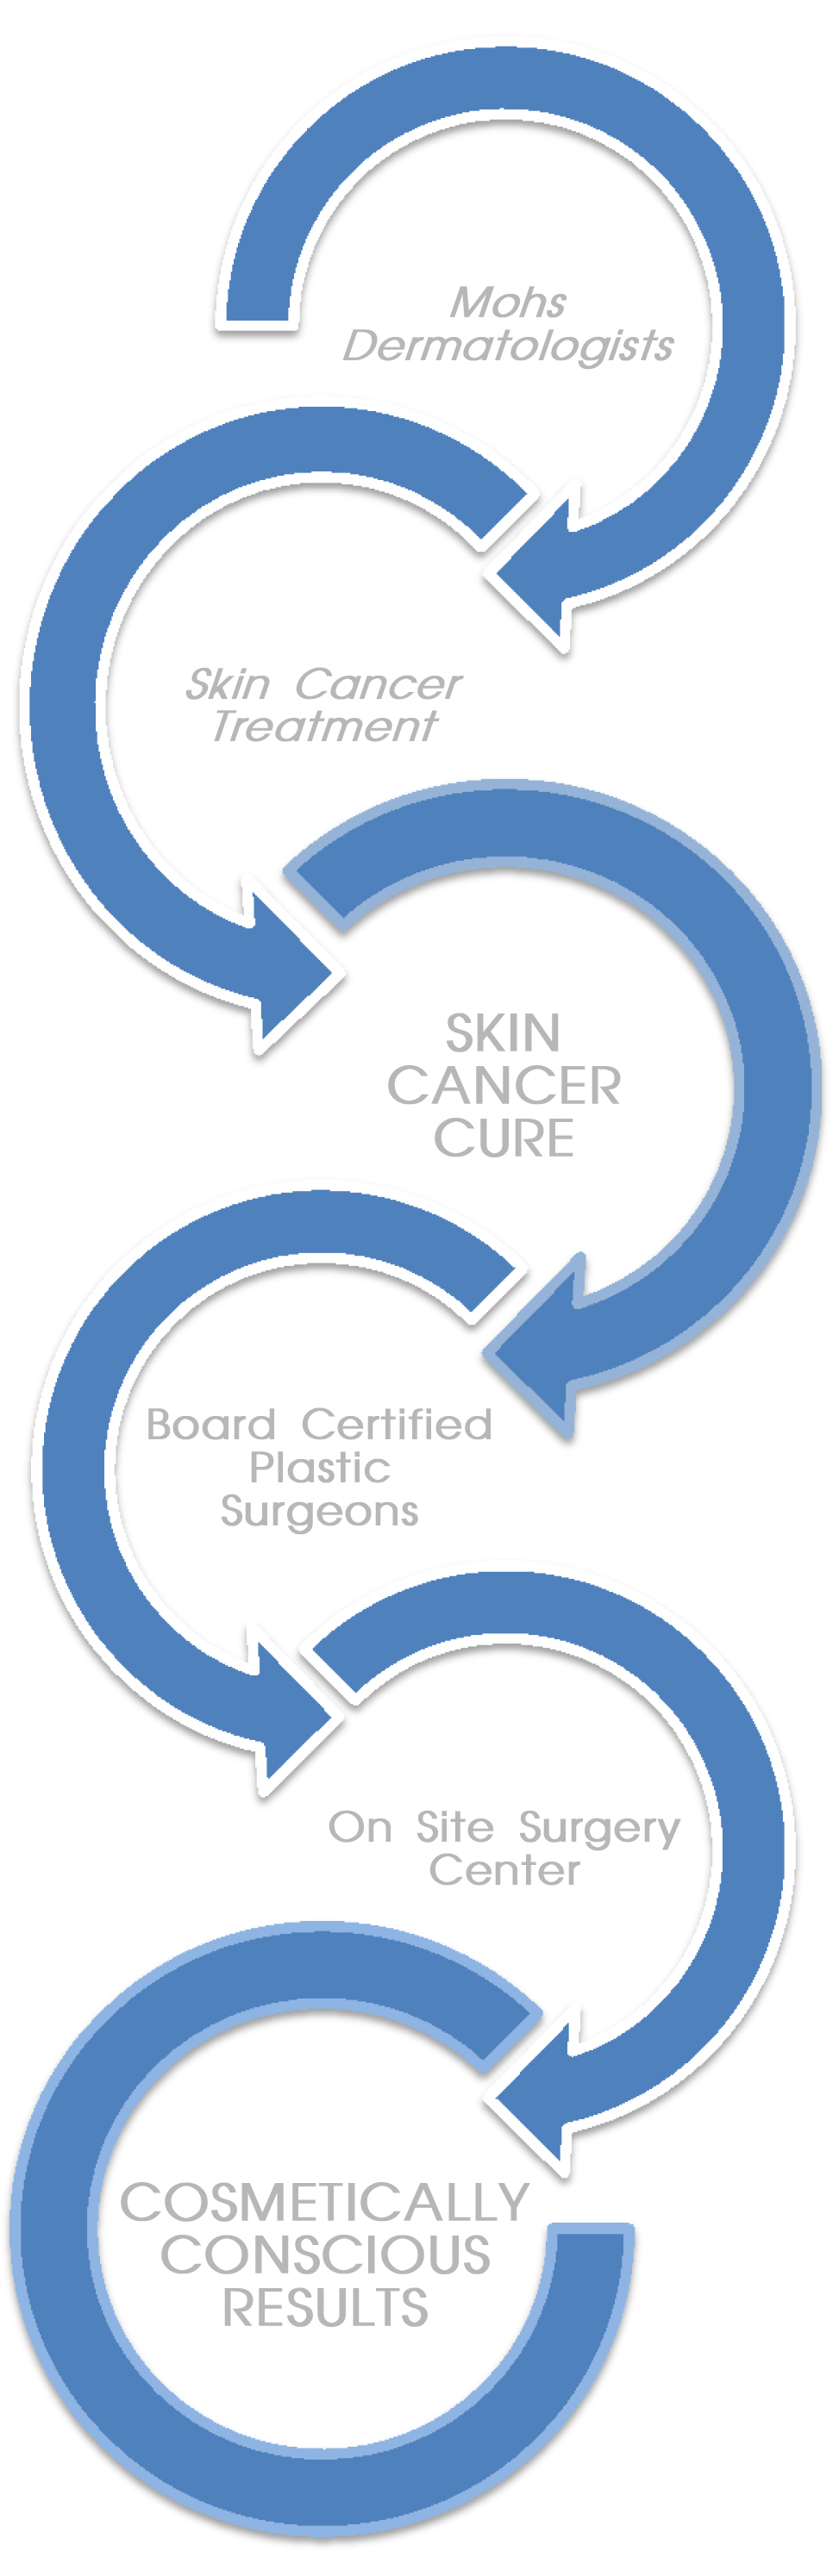 Skin-Cancer-And-Reconstructive-Surgery-Center-Team-Approach